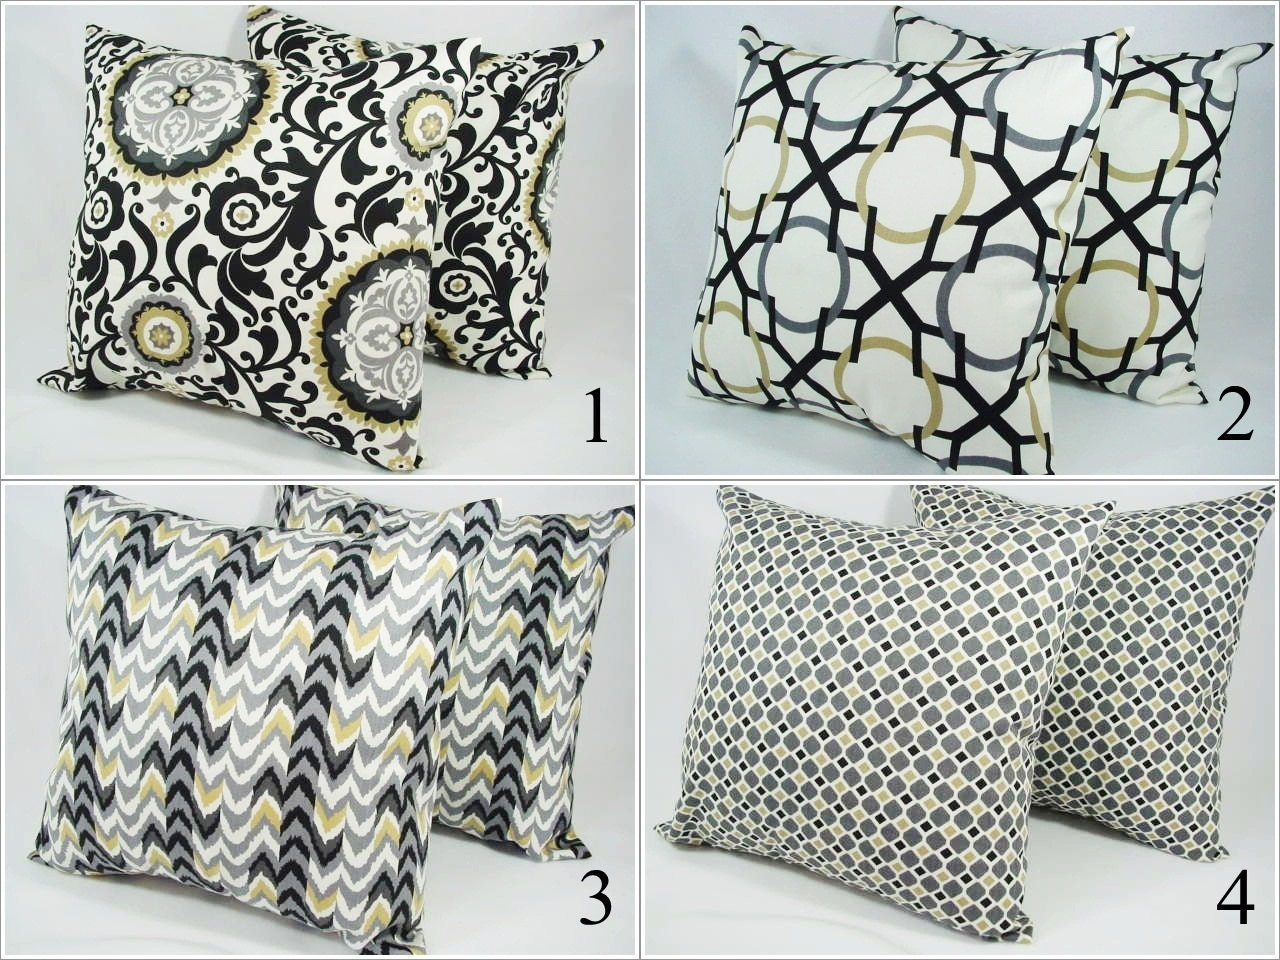 Decorative Pillows Black And Grey : Items similar to Choose Your Own Throw Pillow Covers Grey Black Brown and White - 18 x 18 inches ...